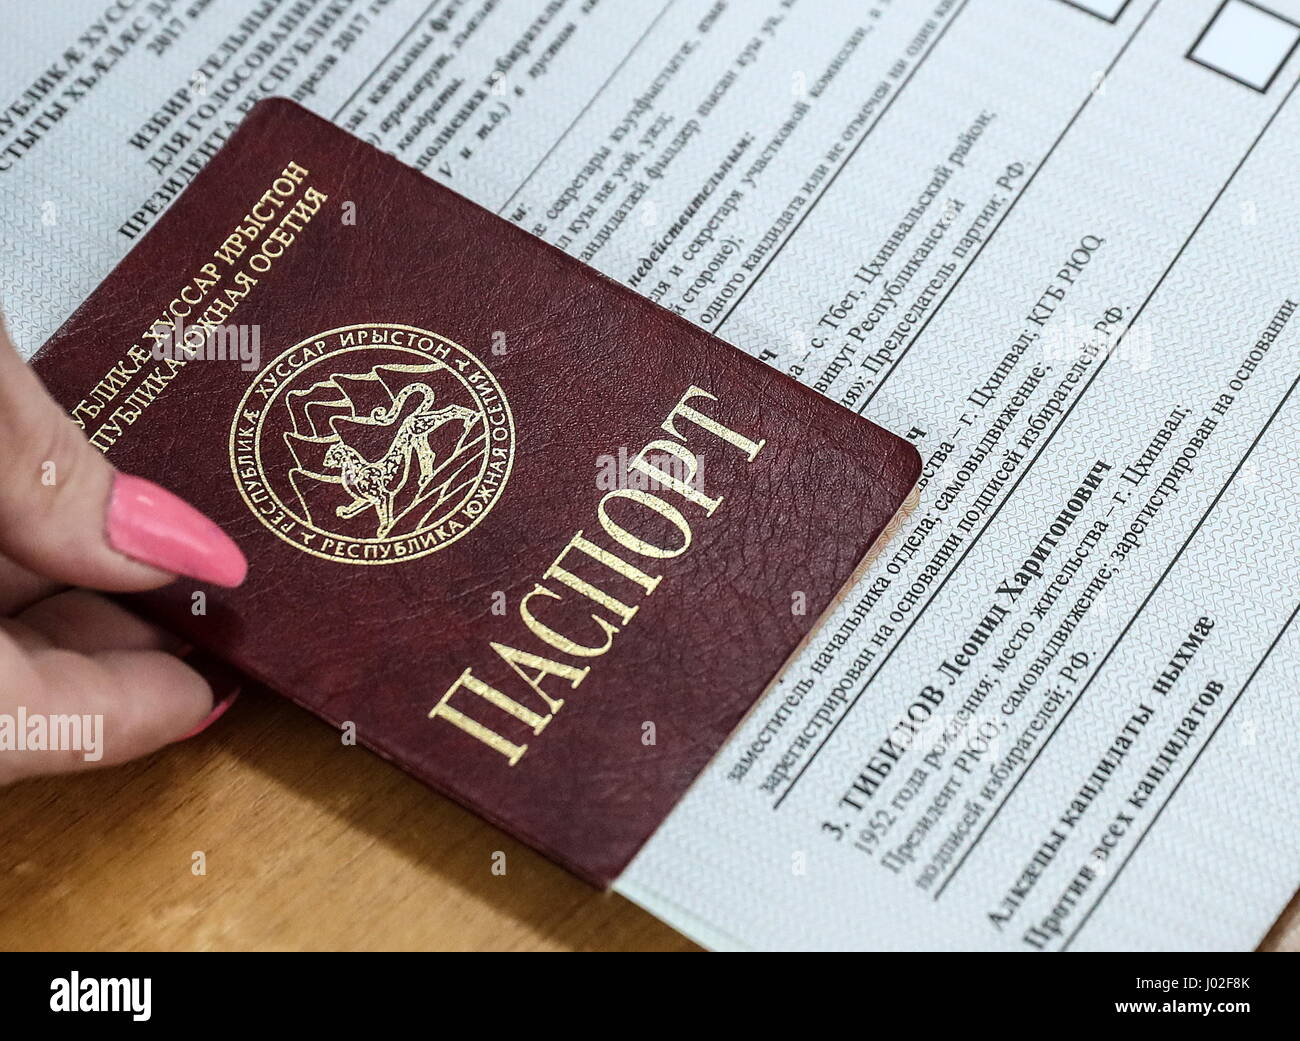 Tskhinval, South Ossetia. 9th Apr, 2017. A South Ossetian passport and a ballot seen during the 2017 South Ossetian - Stock Image